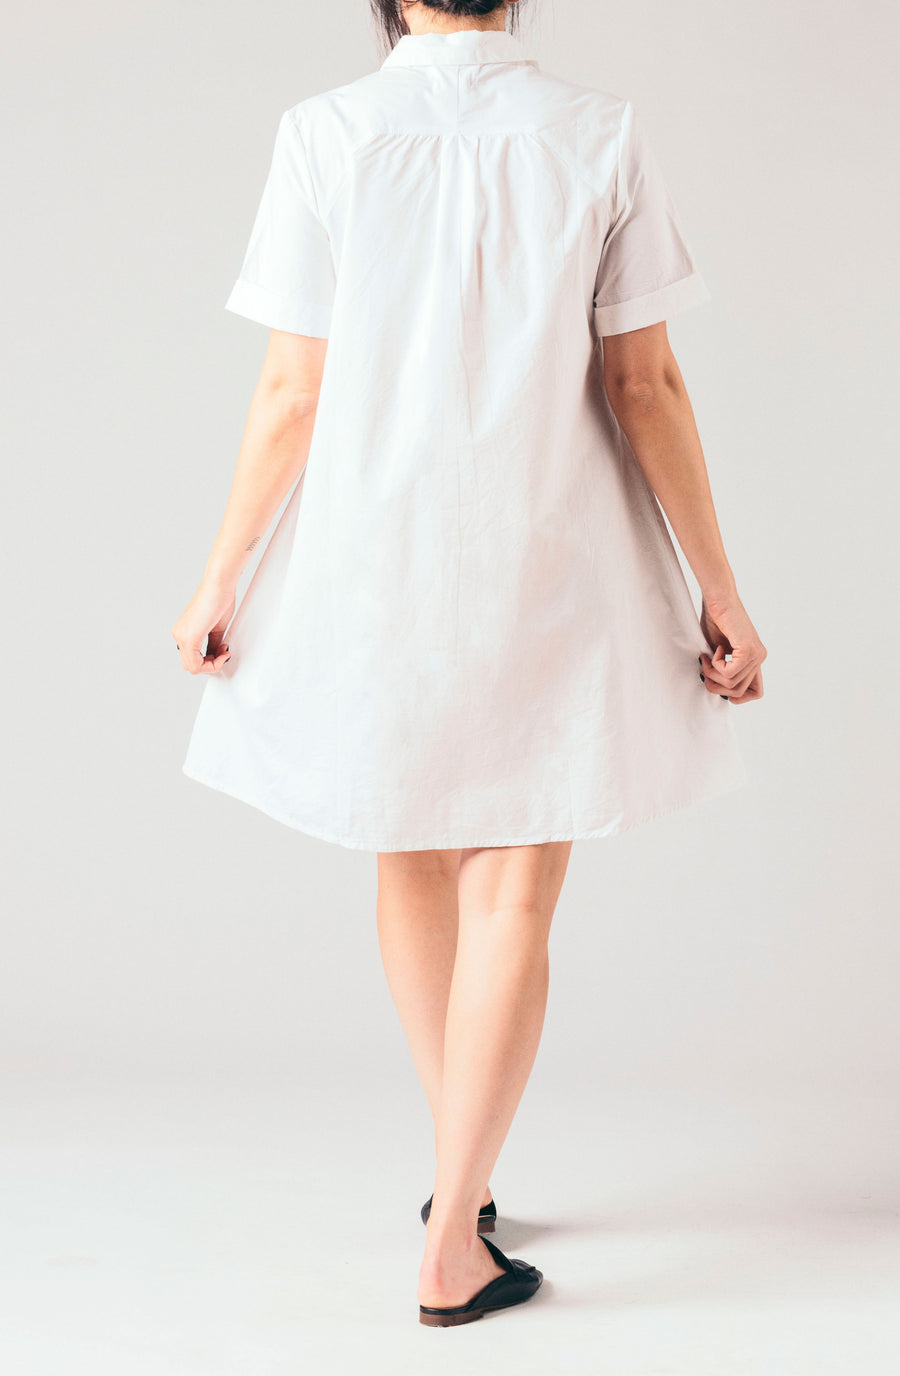 Native Youth white short shirt dress with small slits collared white short sleeve blouse.